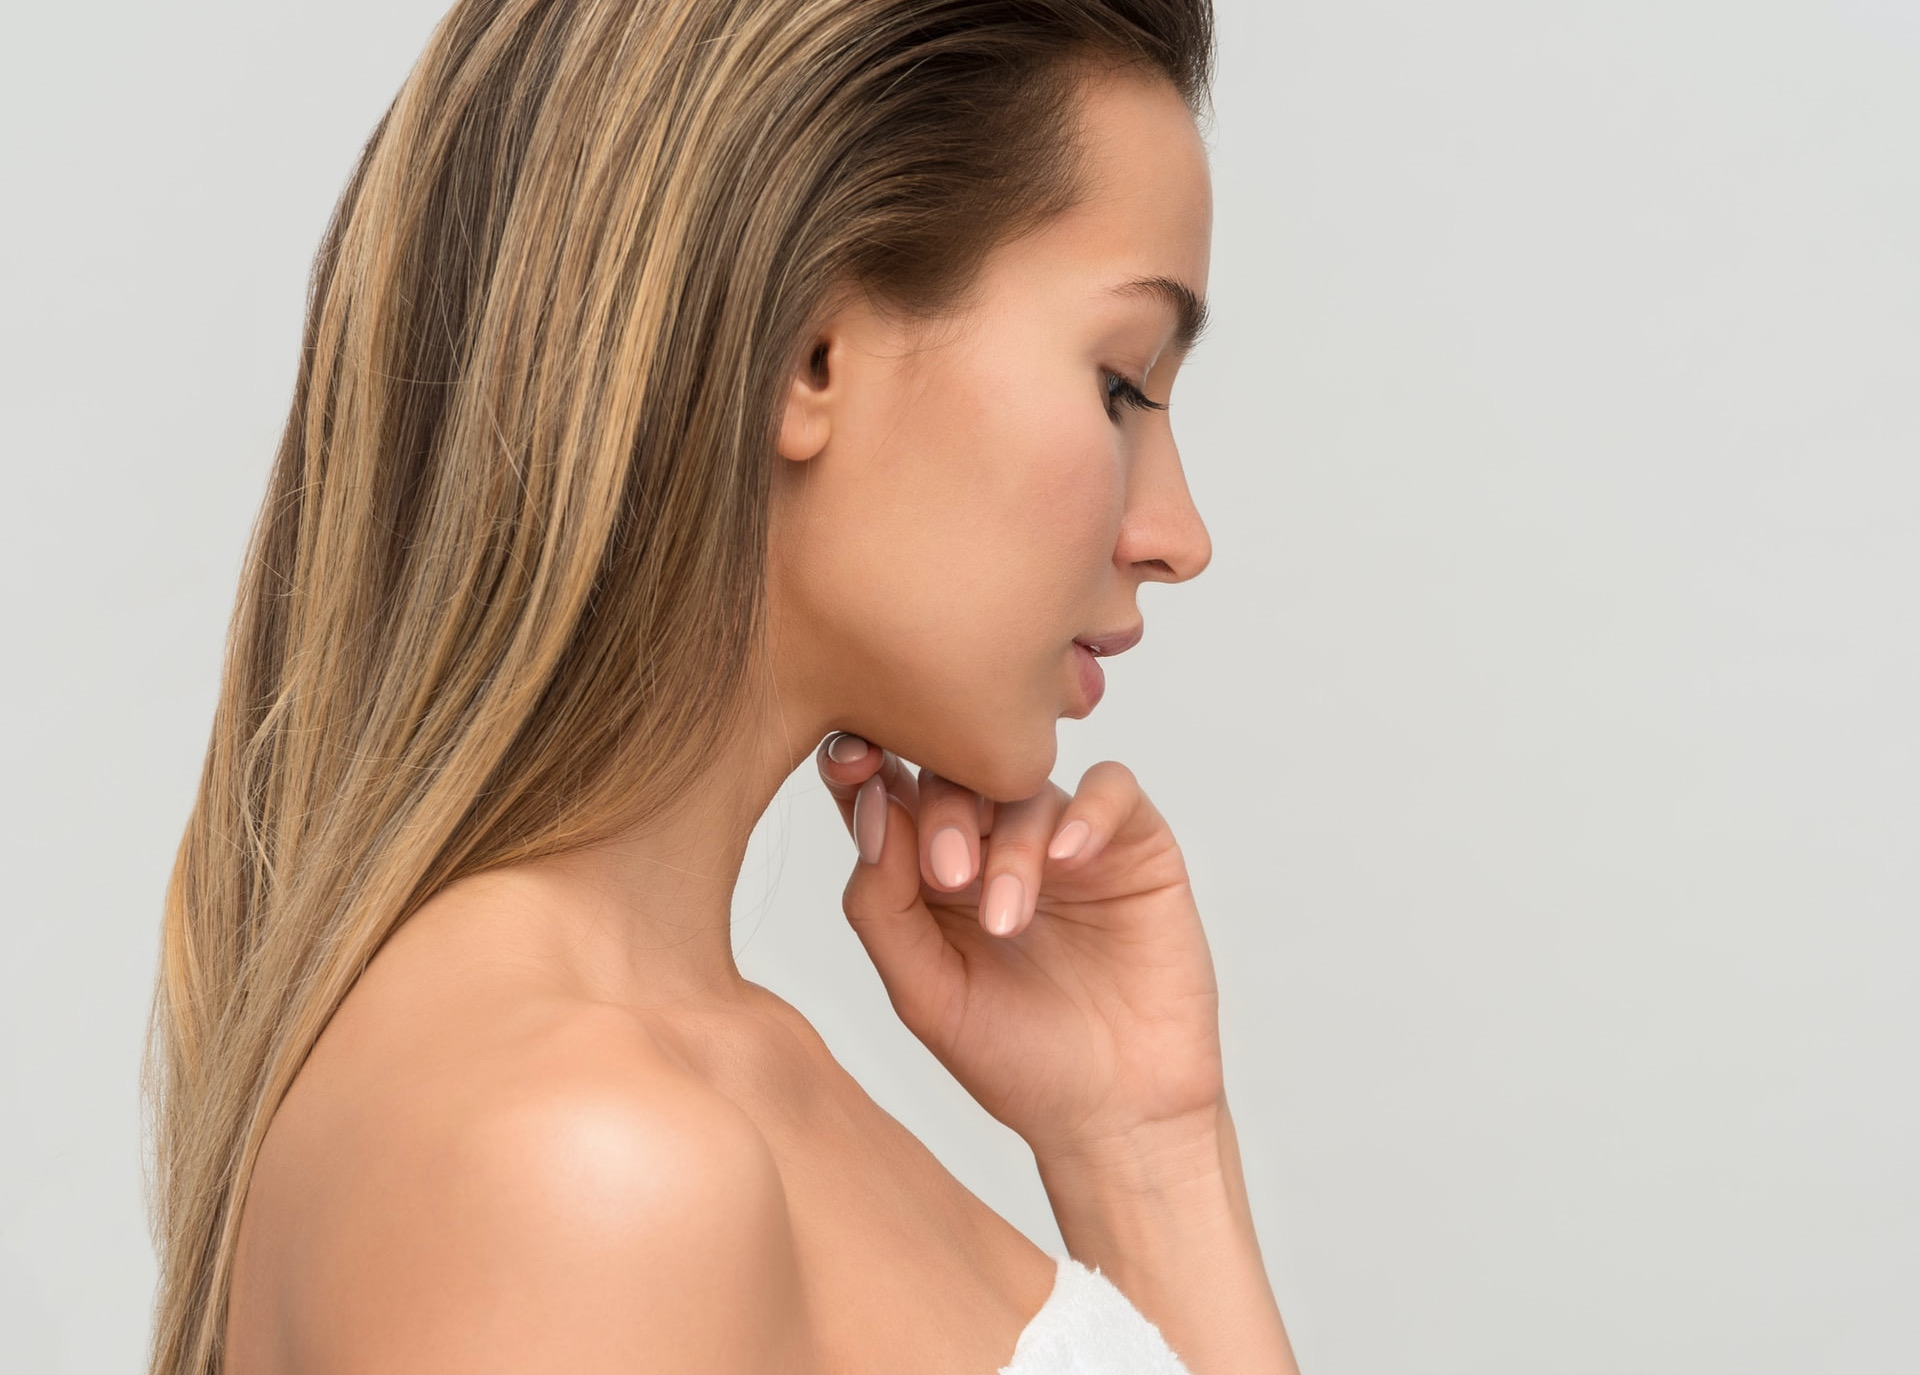 Model With Healthy Skin Poses Side-on, Hand Under Chin, Thinking About Ceramides